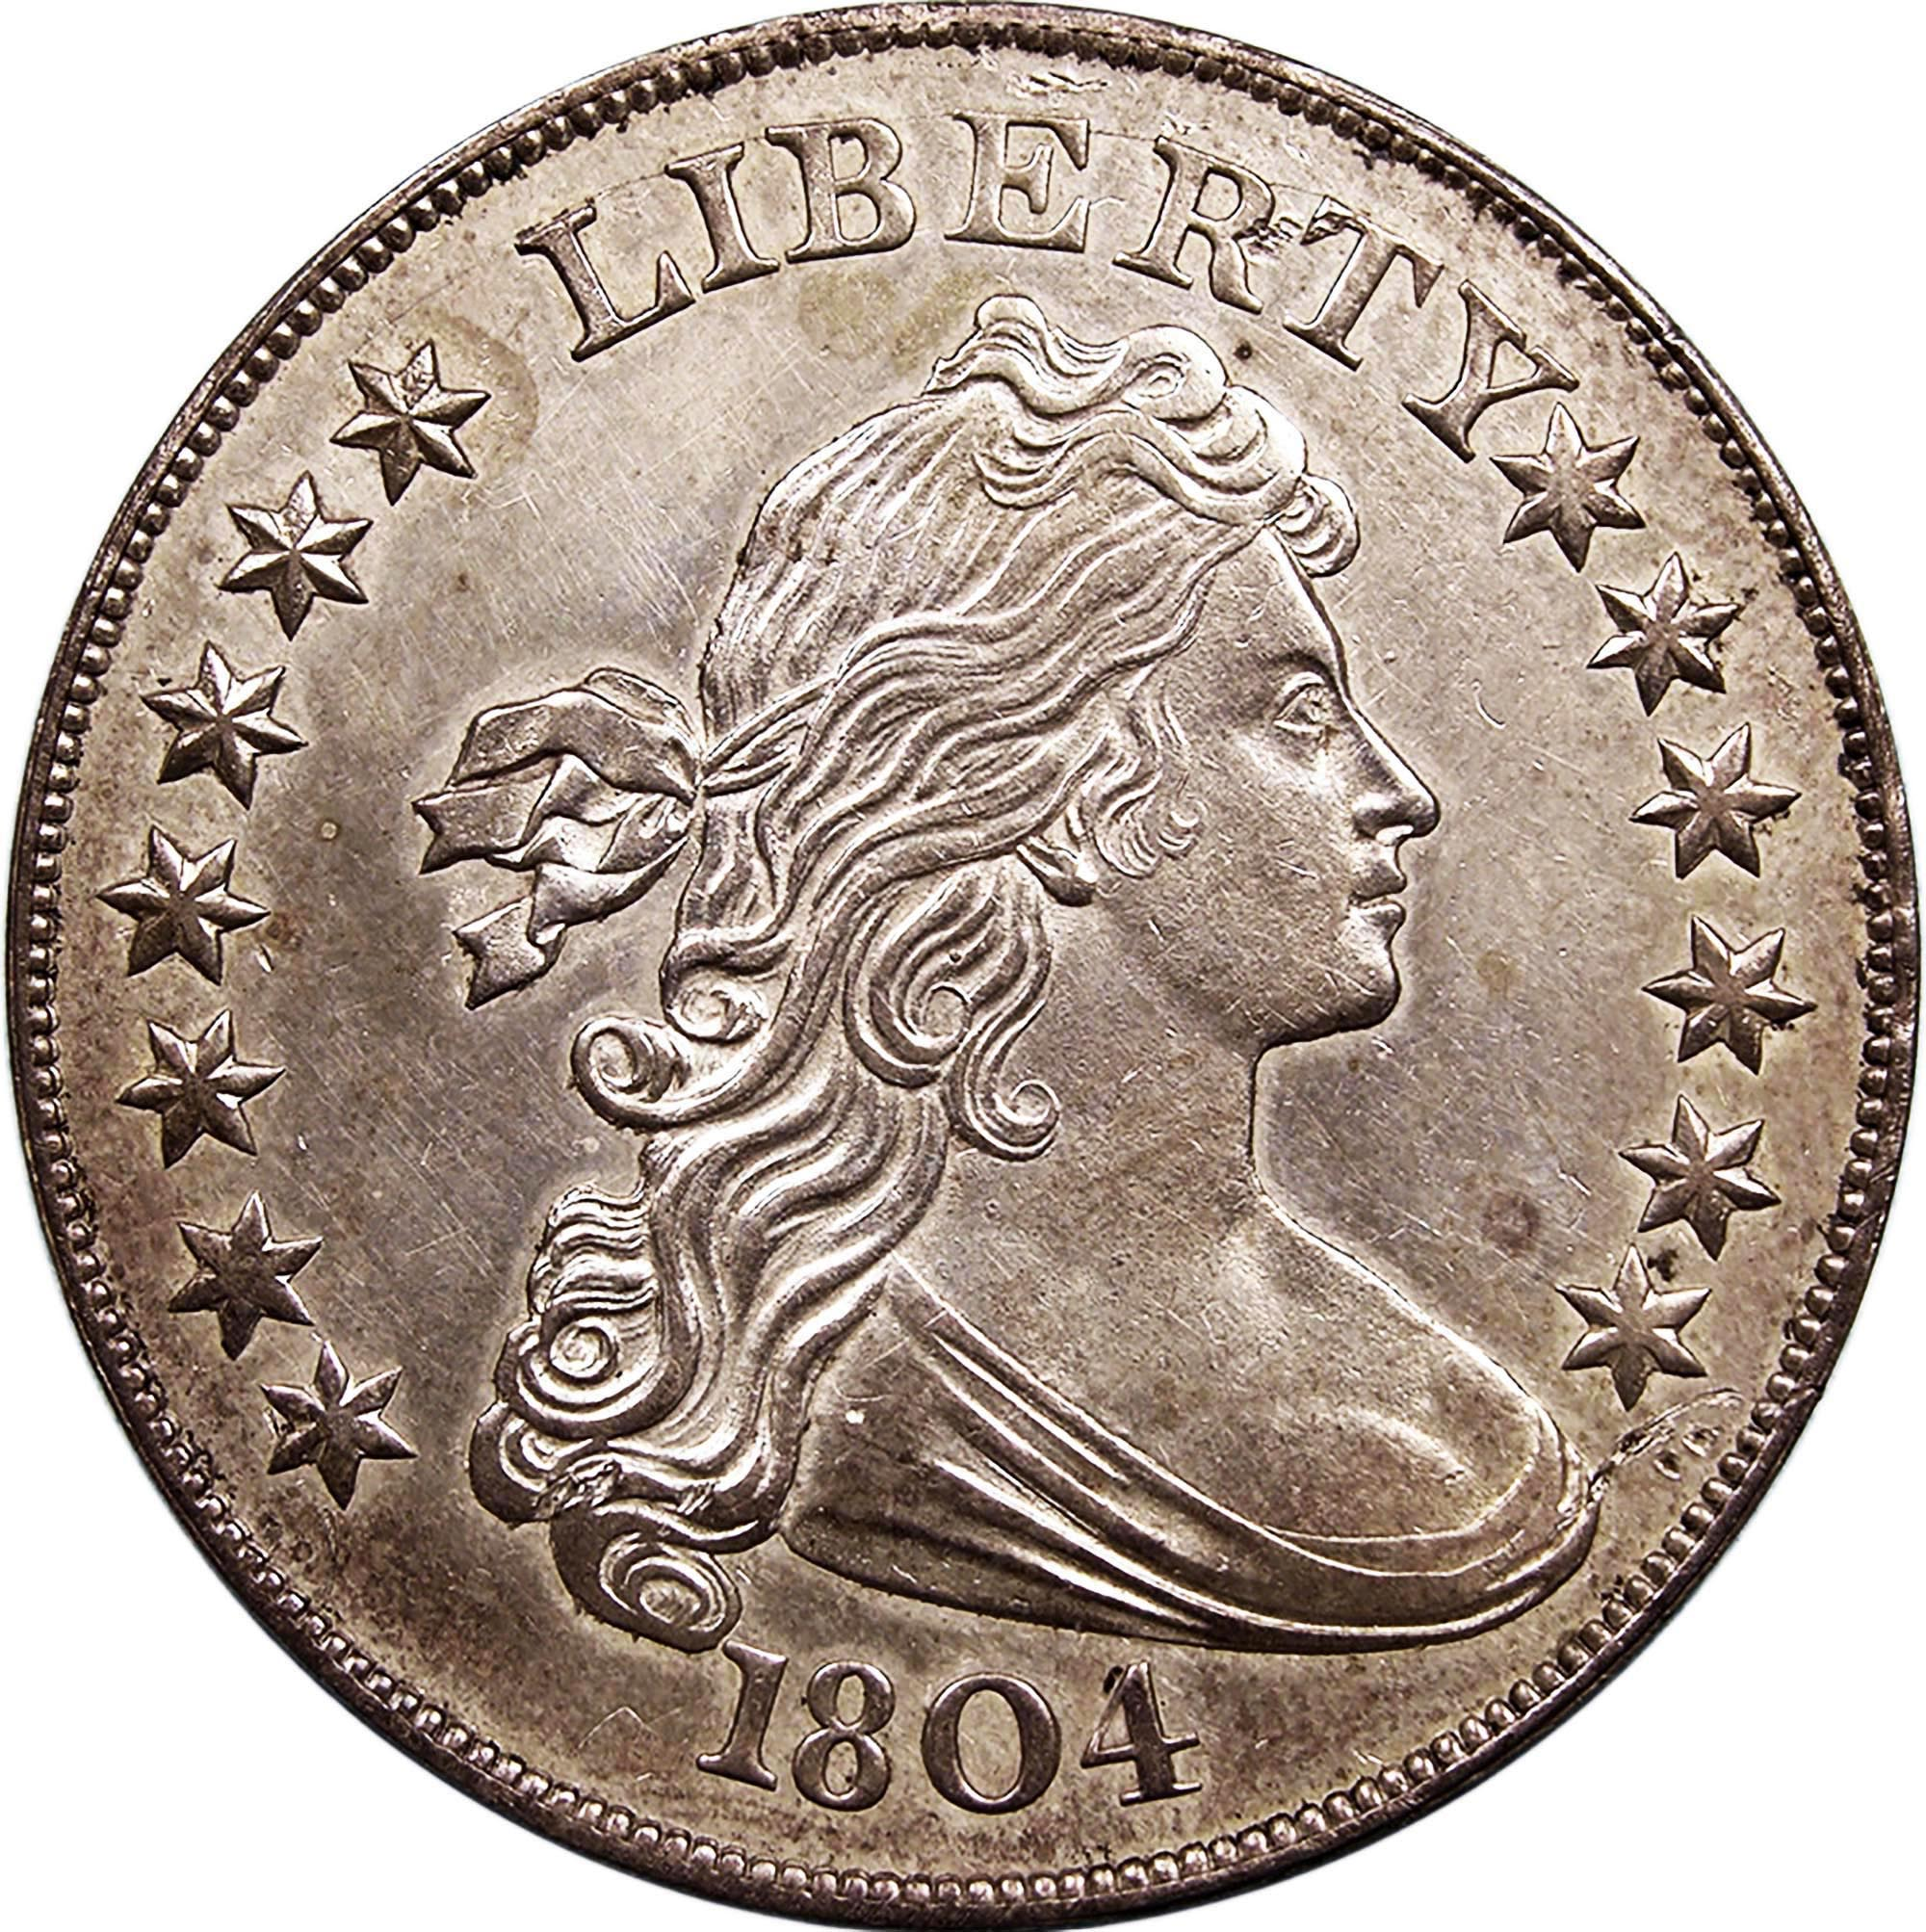 1804 liberty coin value